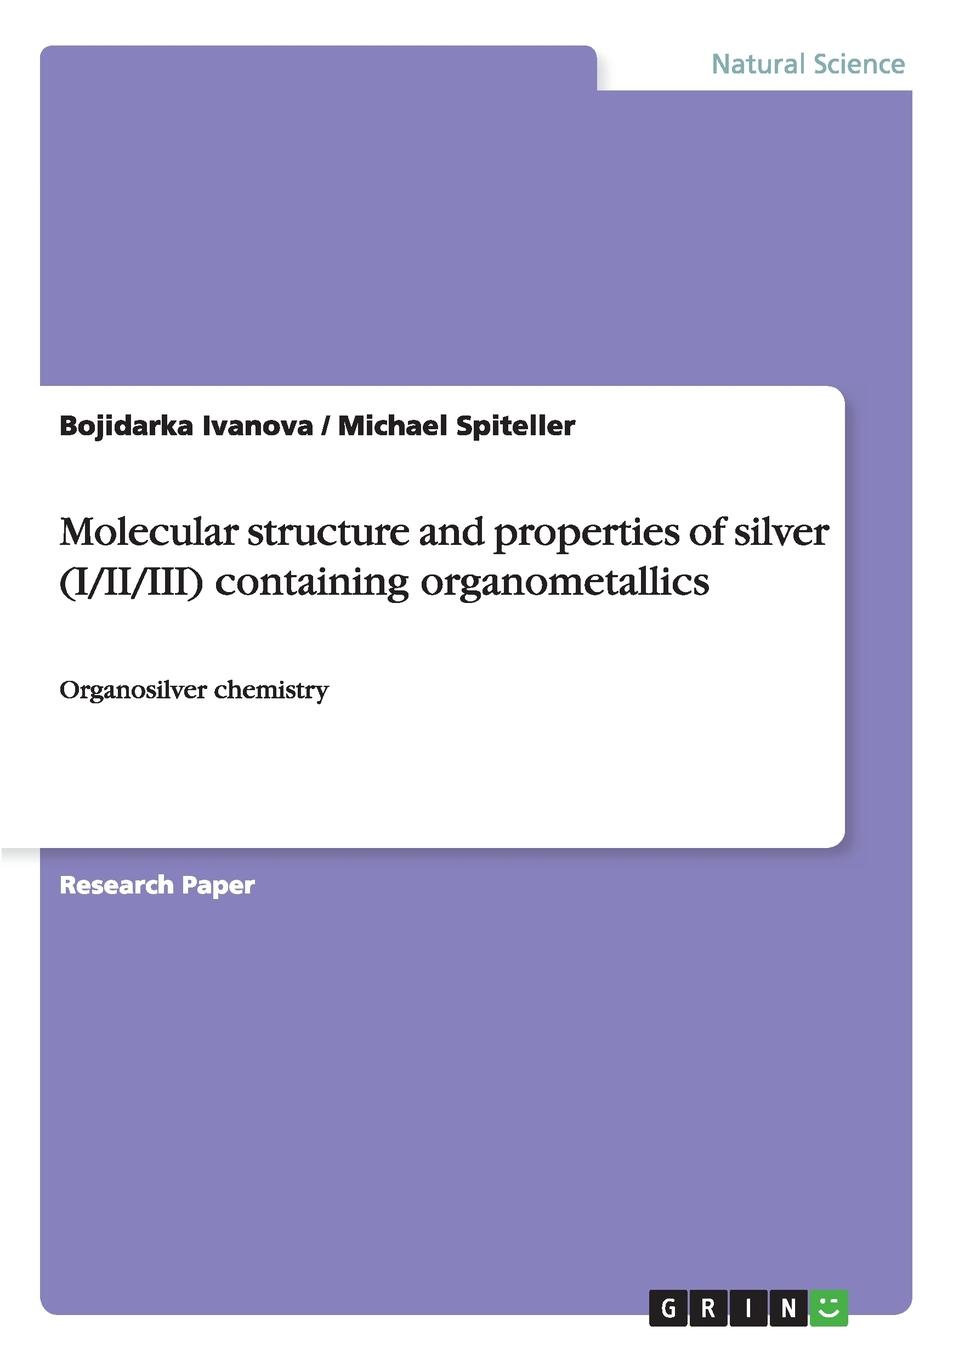 Bojidarka Ivanova, Michael Spiteller Molecular structure and properties of silver (I/II/III) containing organometallics i philip silverstein the effect of varying humidities upon some physical properties of paper